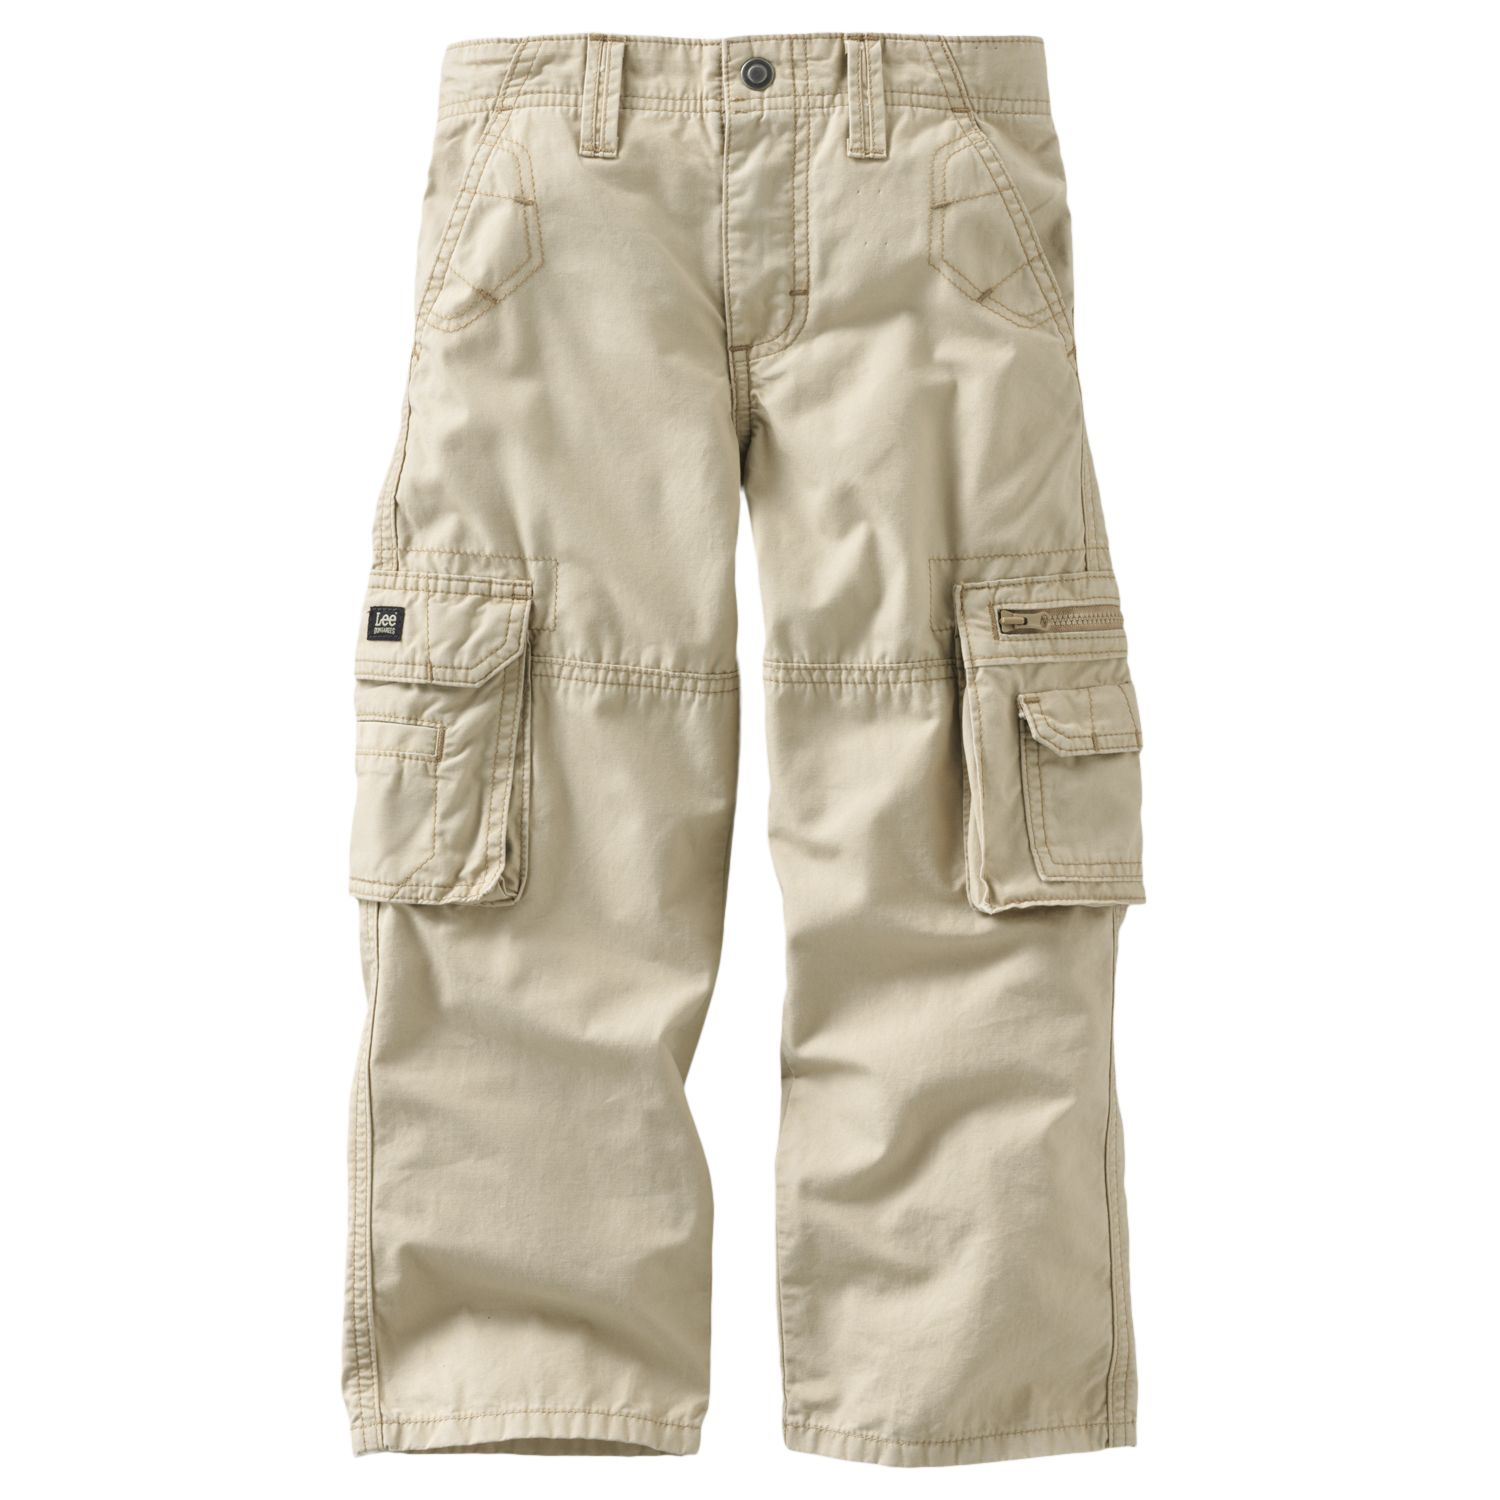 Cargo Pants For Boys dLB6CW1Y